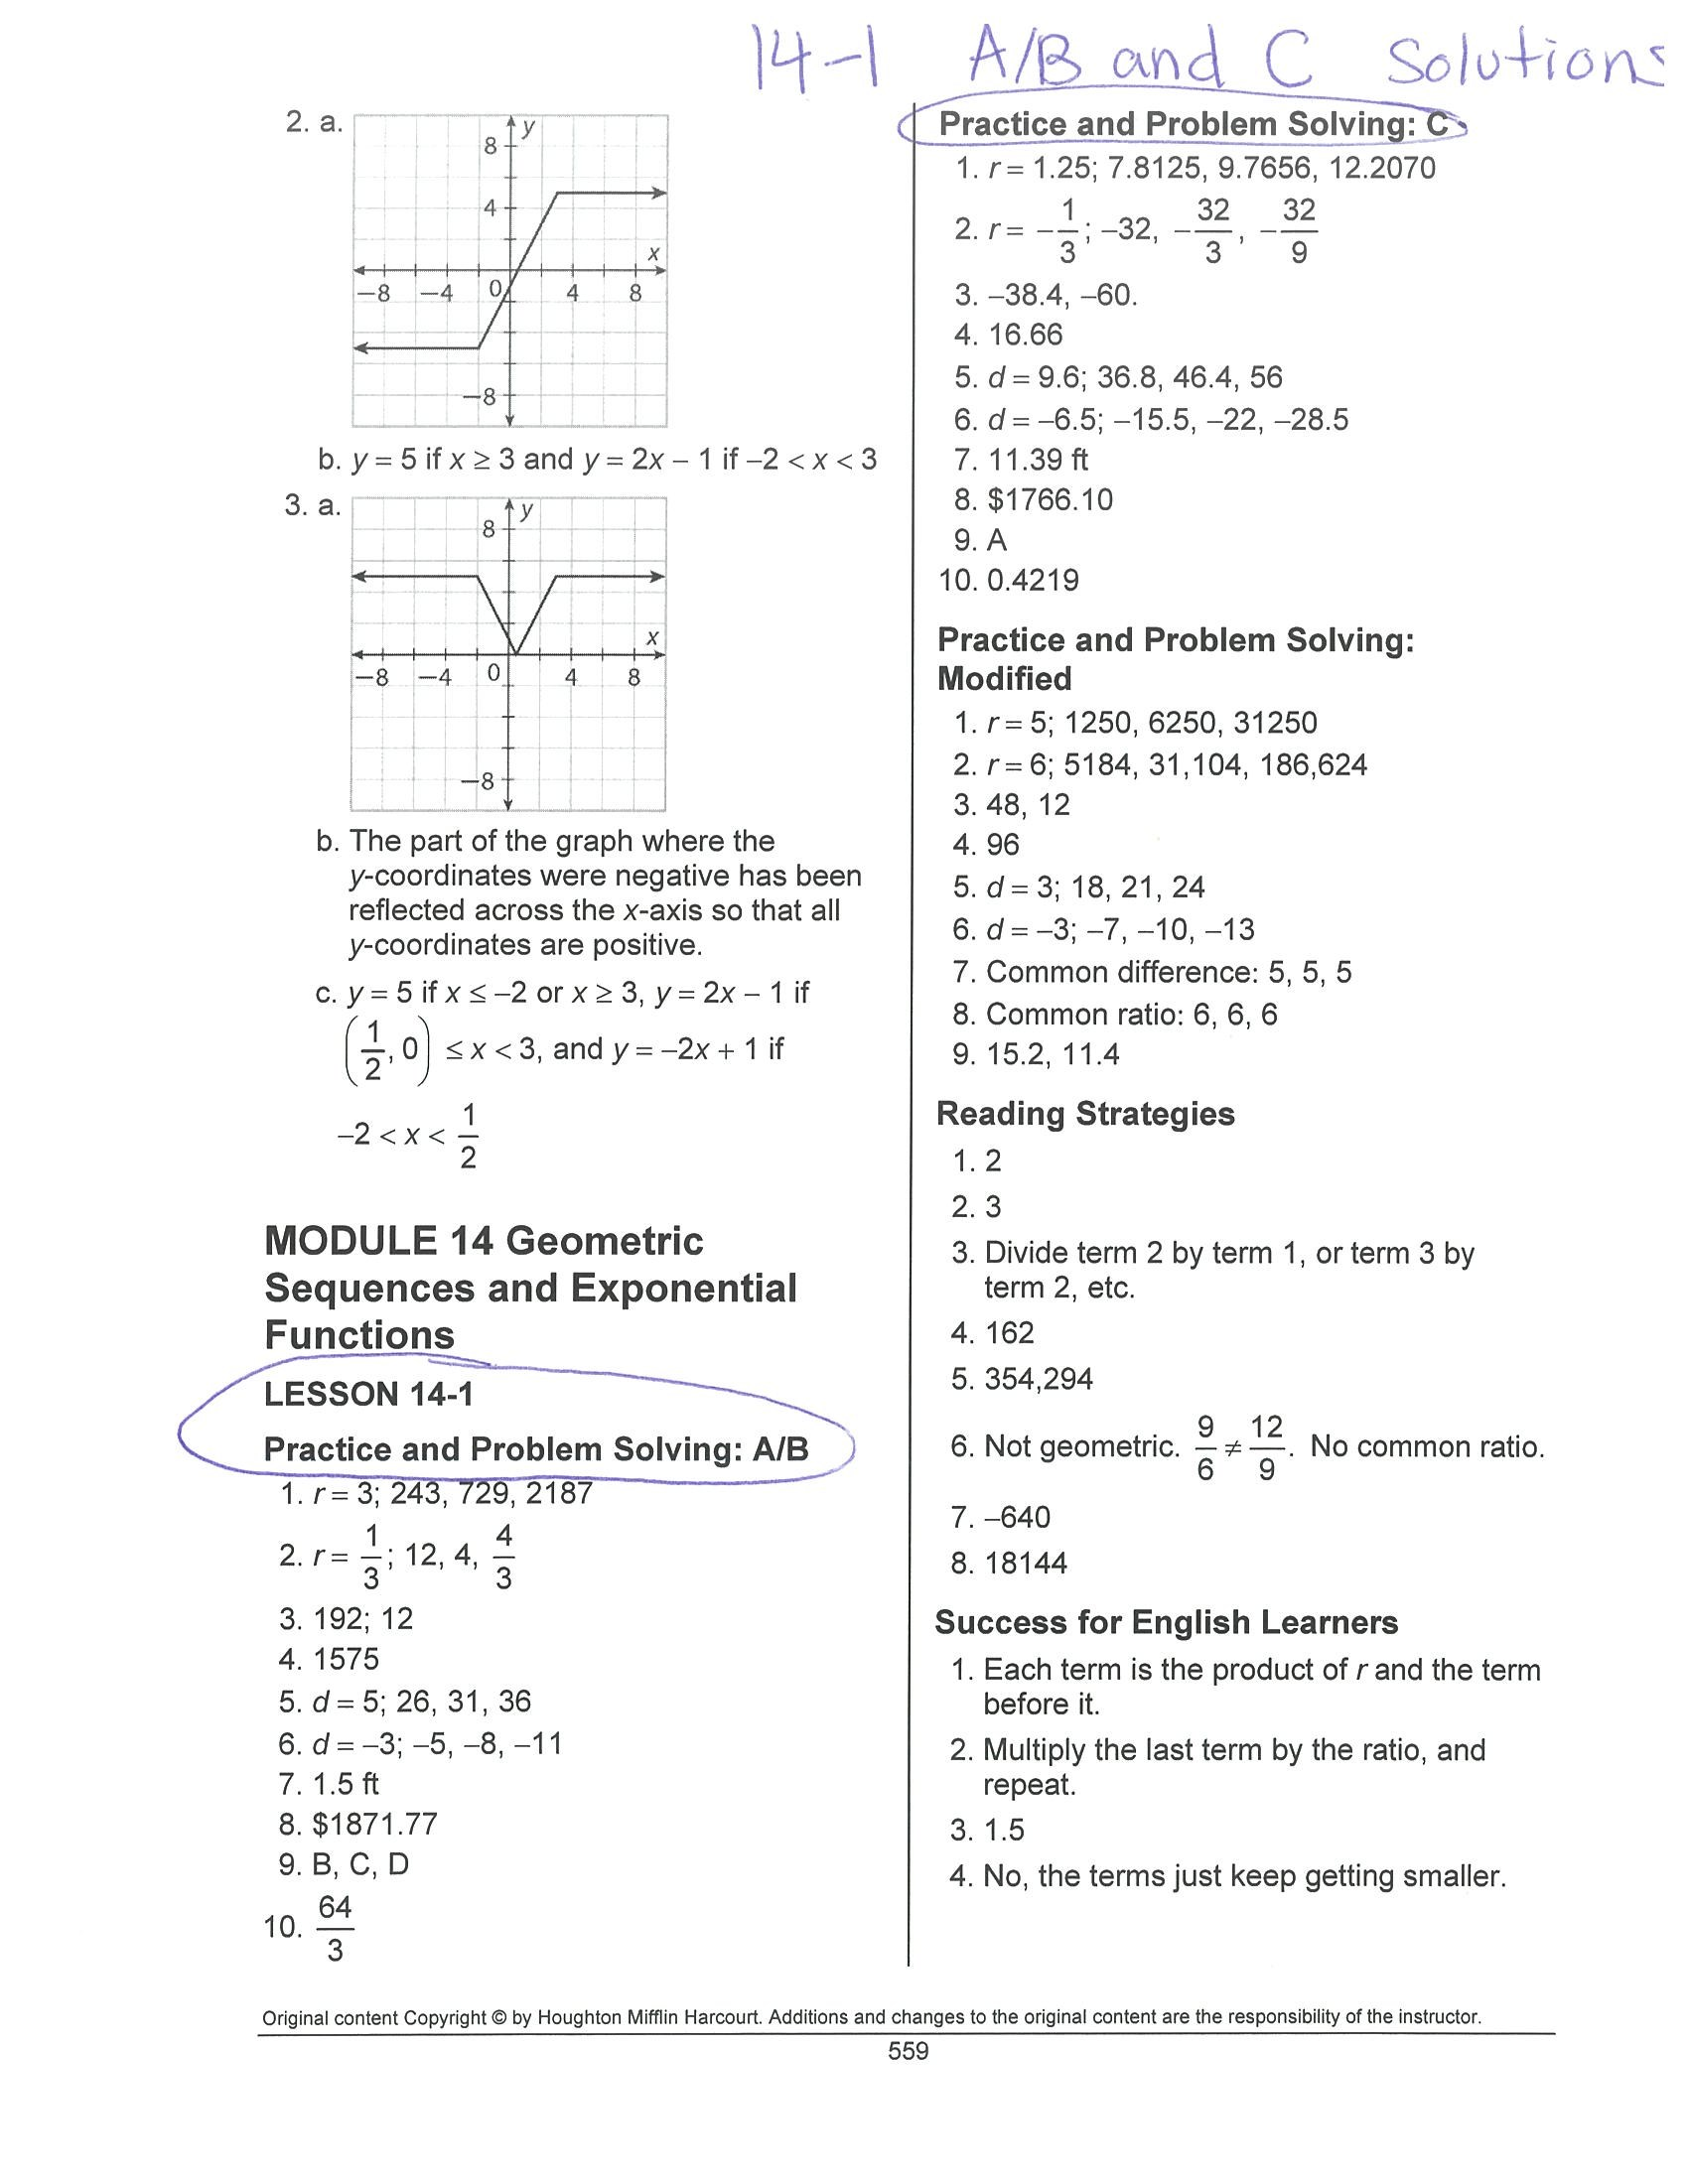 Reasoning With Linear Equations And Inequalities Study Guide